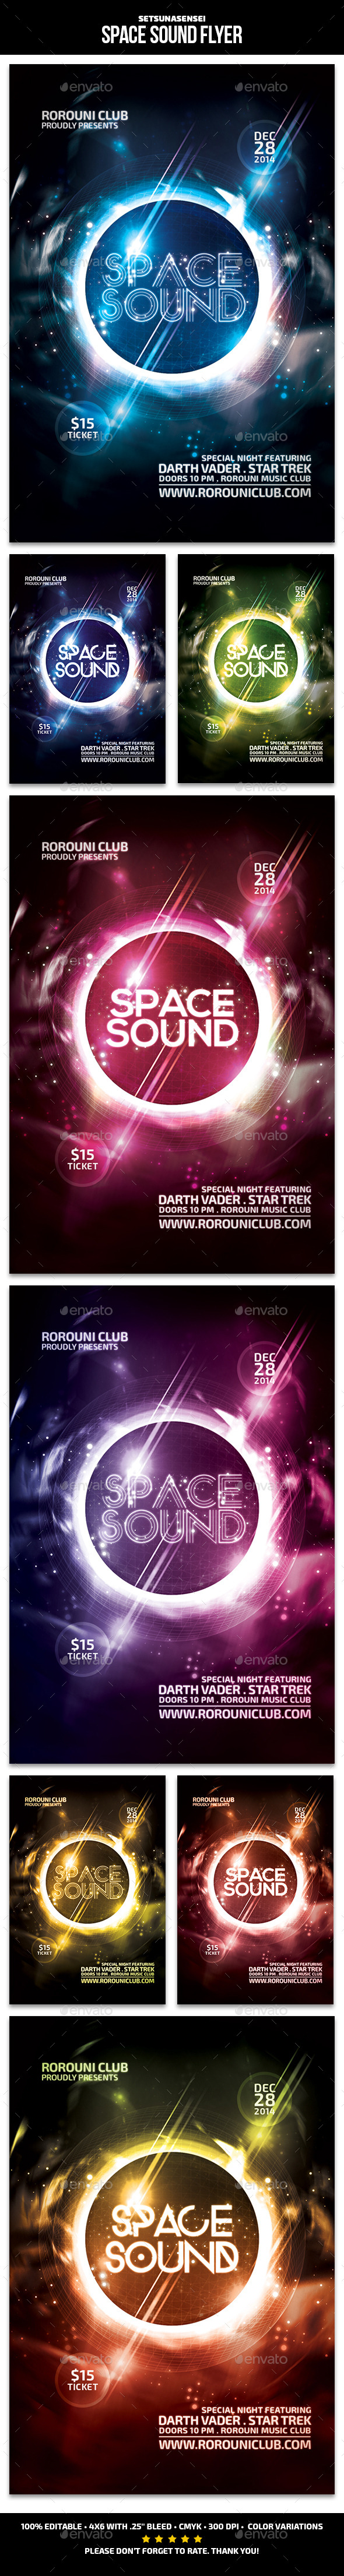 GraphicRiver Space Sound Flyer 9571669